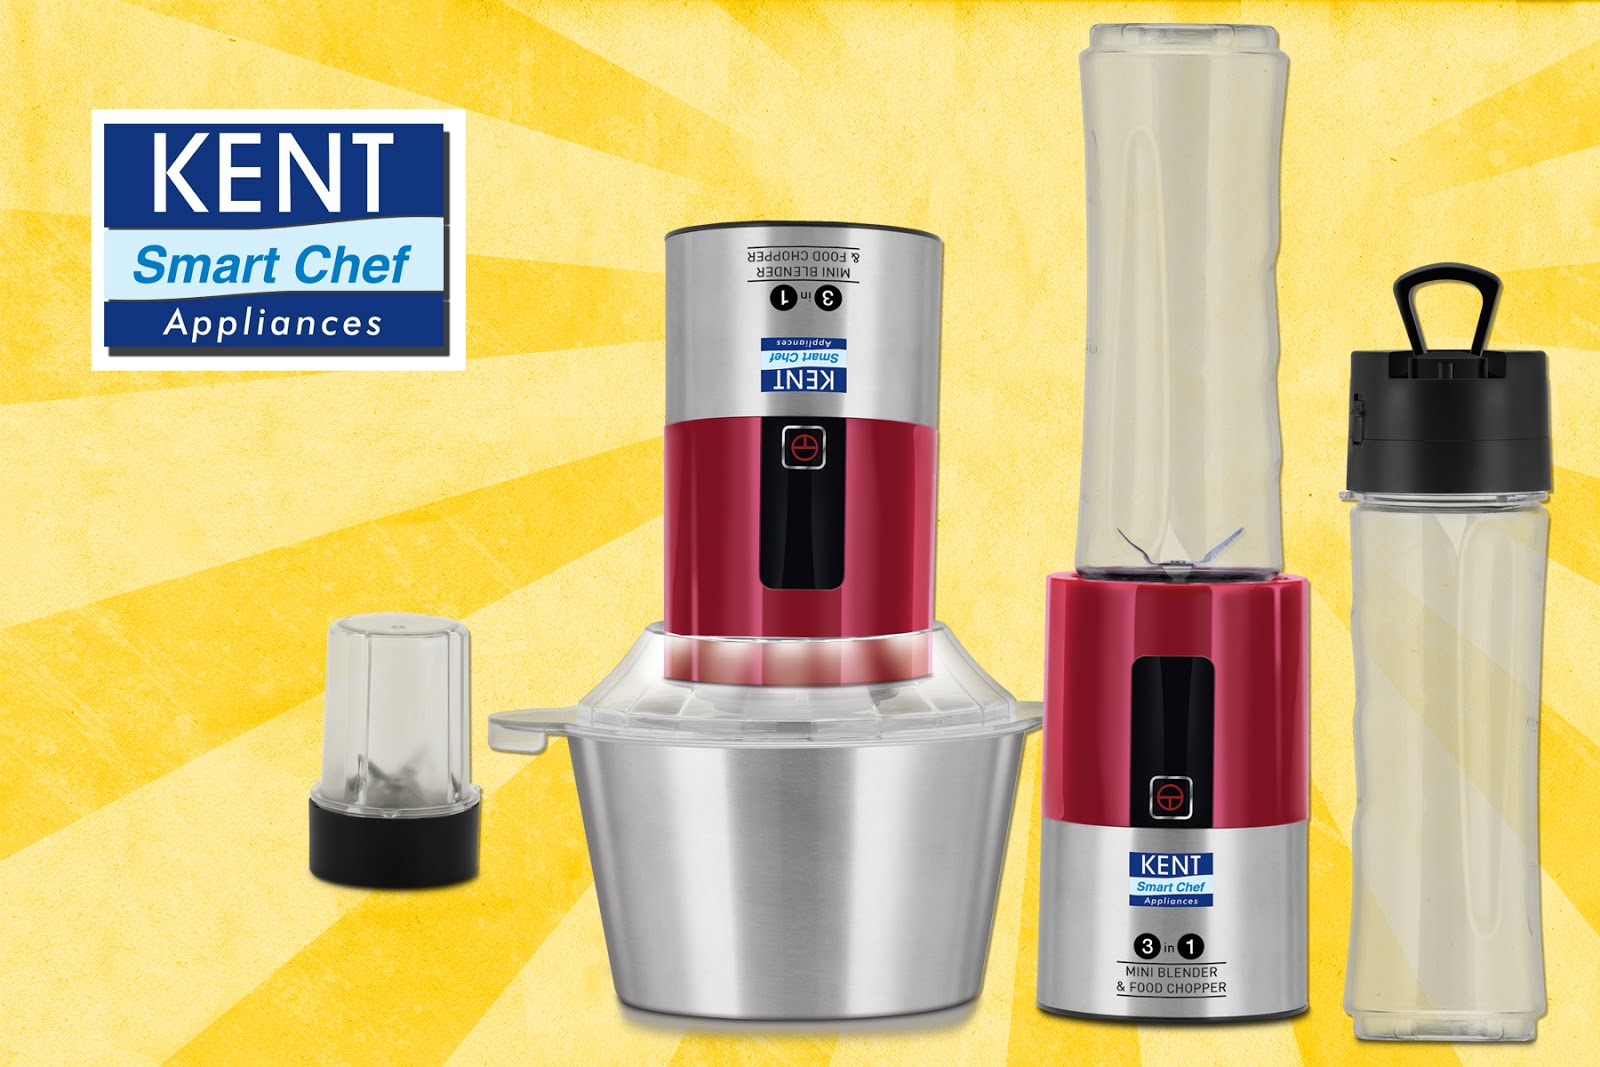 Kent Launches 3 In 1 Mini Blender And Food Chopper Techphlie